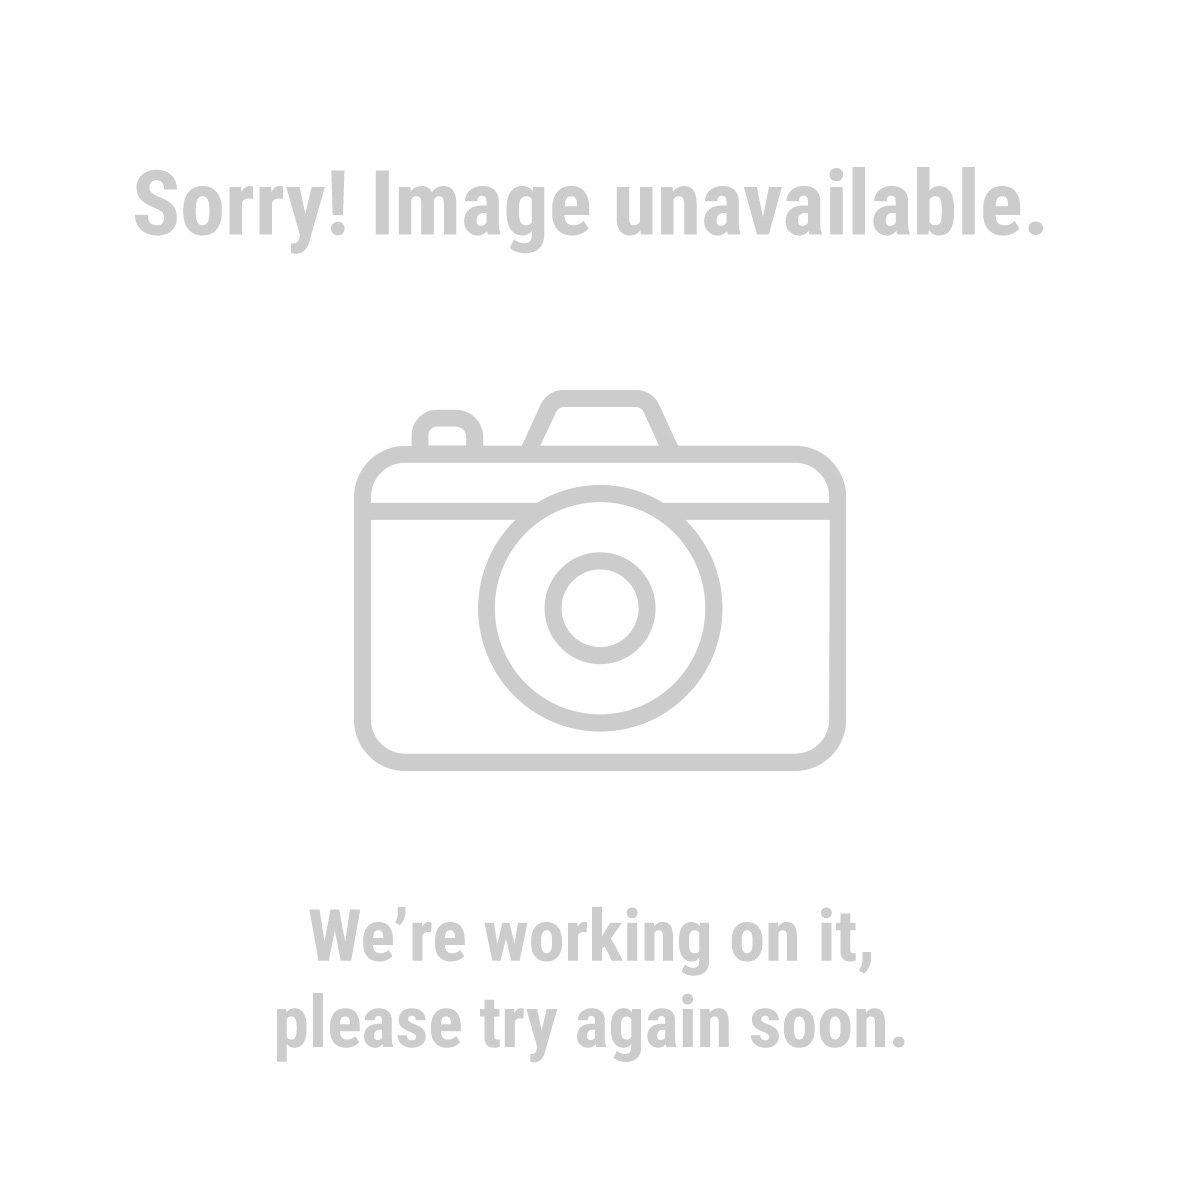 Warrior 69969 7 Piece 500 Grit Silicon Carbide Sanding Sheets